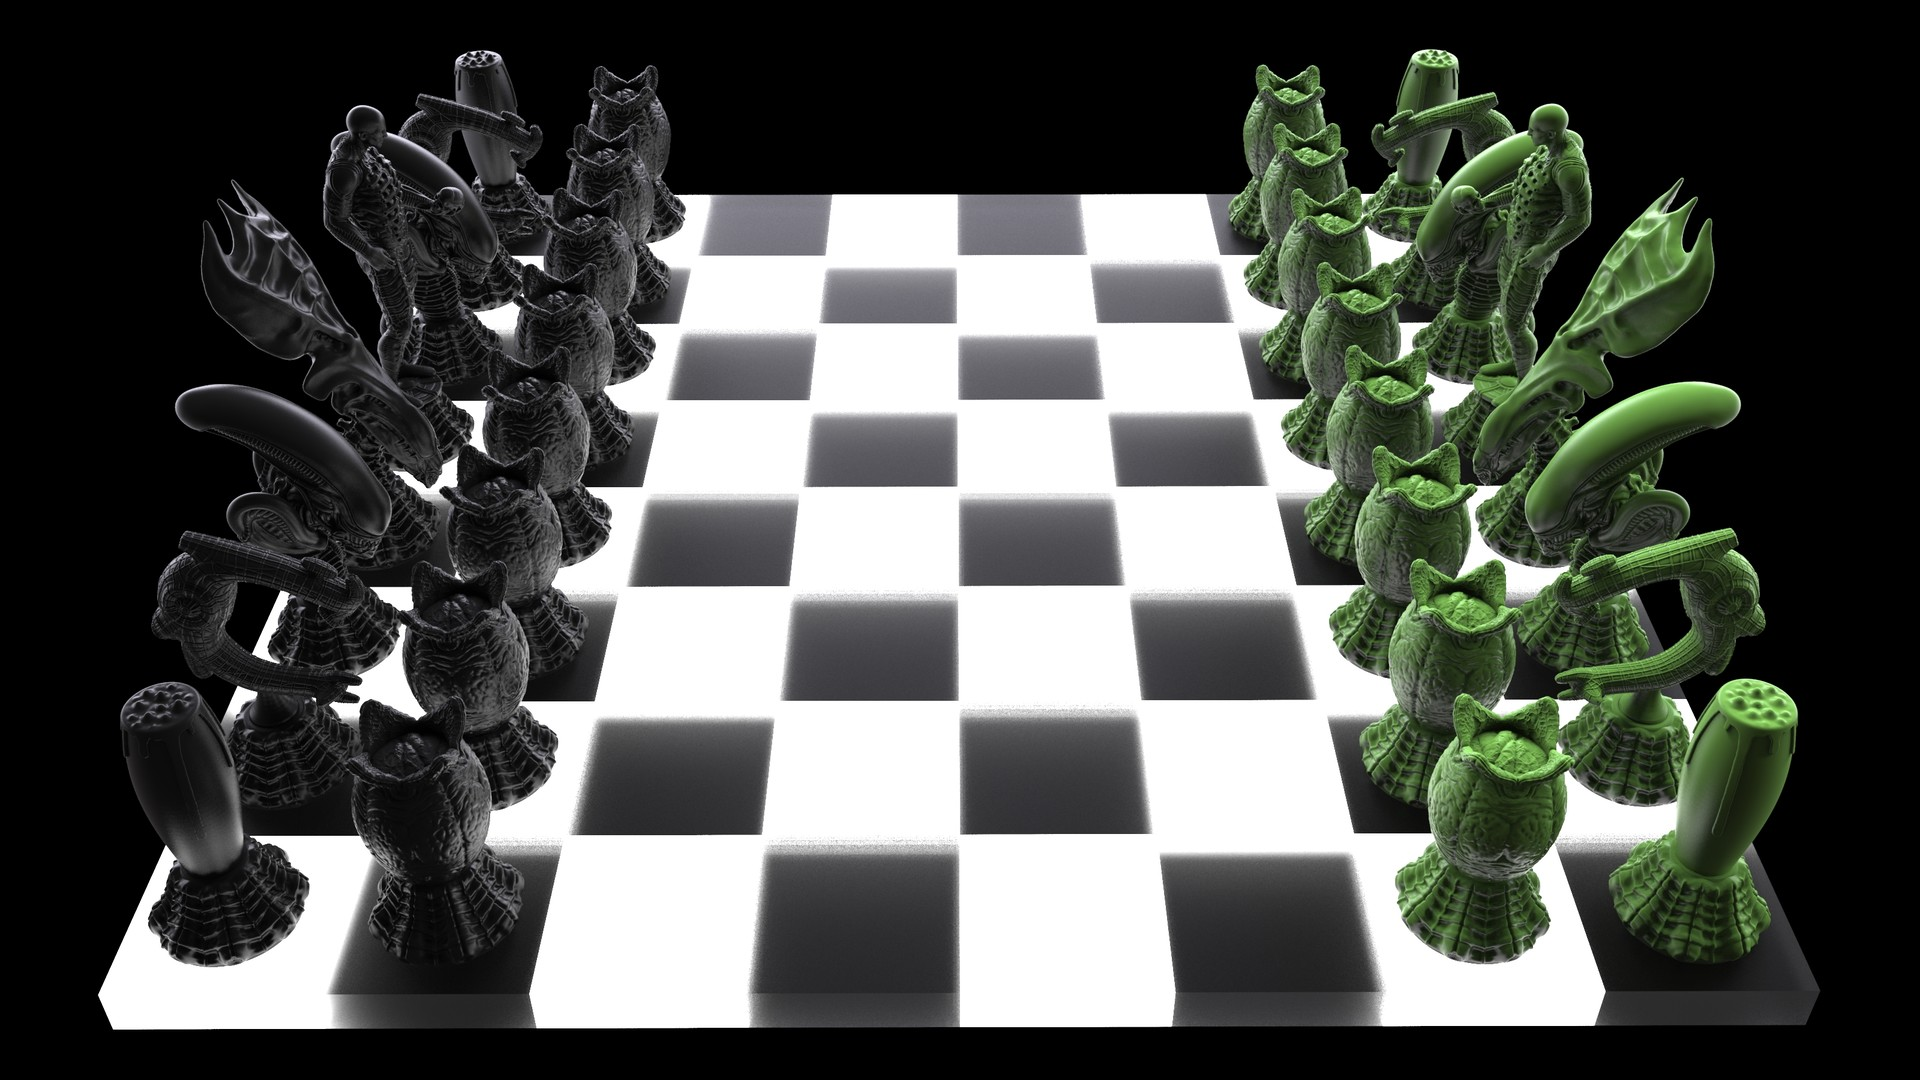 Ken calvert alien chess renders 1071